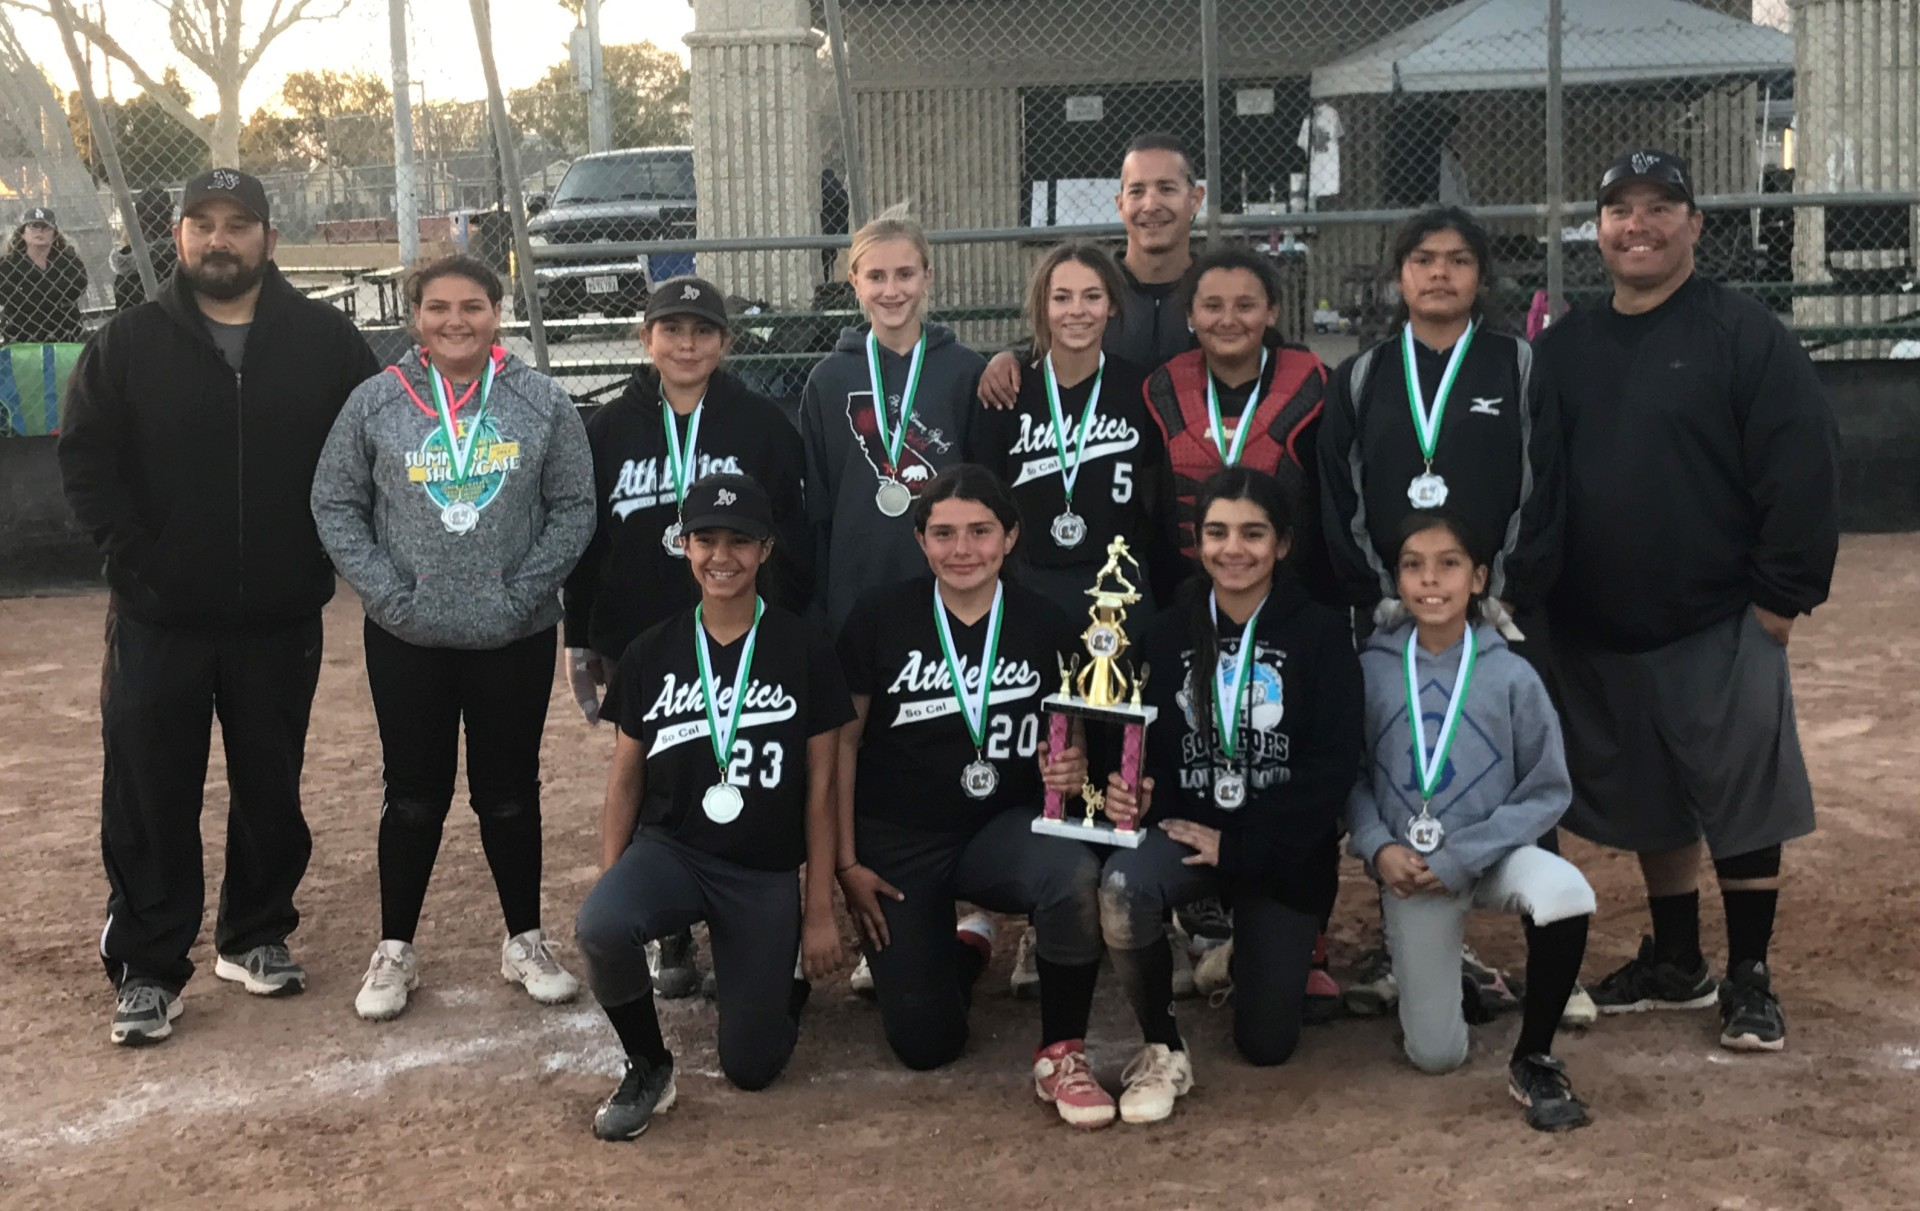 12u - Runner Up - So Cal Athletics 2023